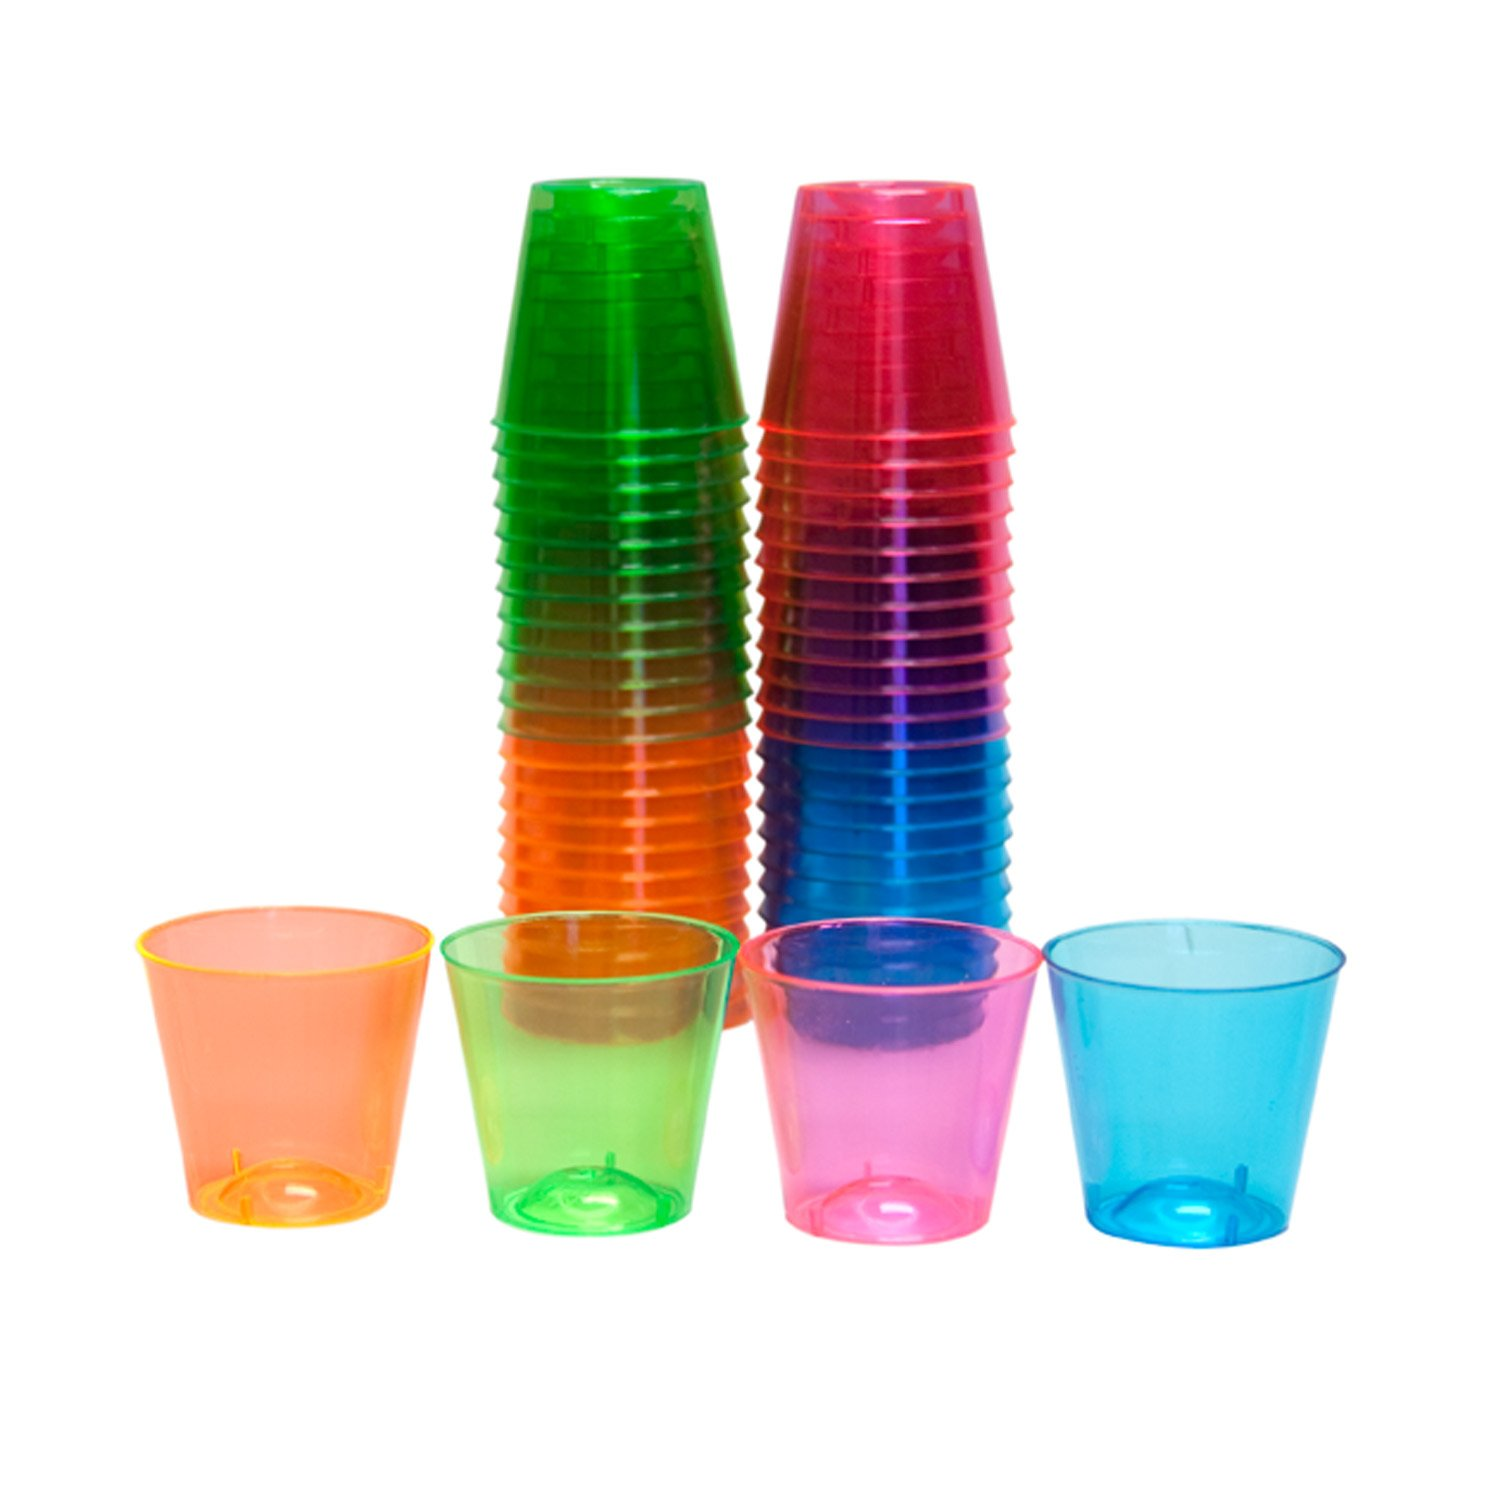 Party Essentials N15090 Brights Hard Plastic Shot Glass, 1 oz. Capacity, Assorted Neon Pink/Green/Blue/Orange (Case of 1000)